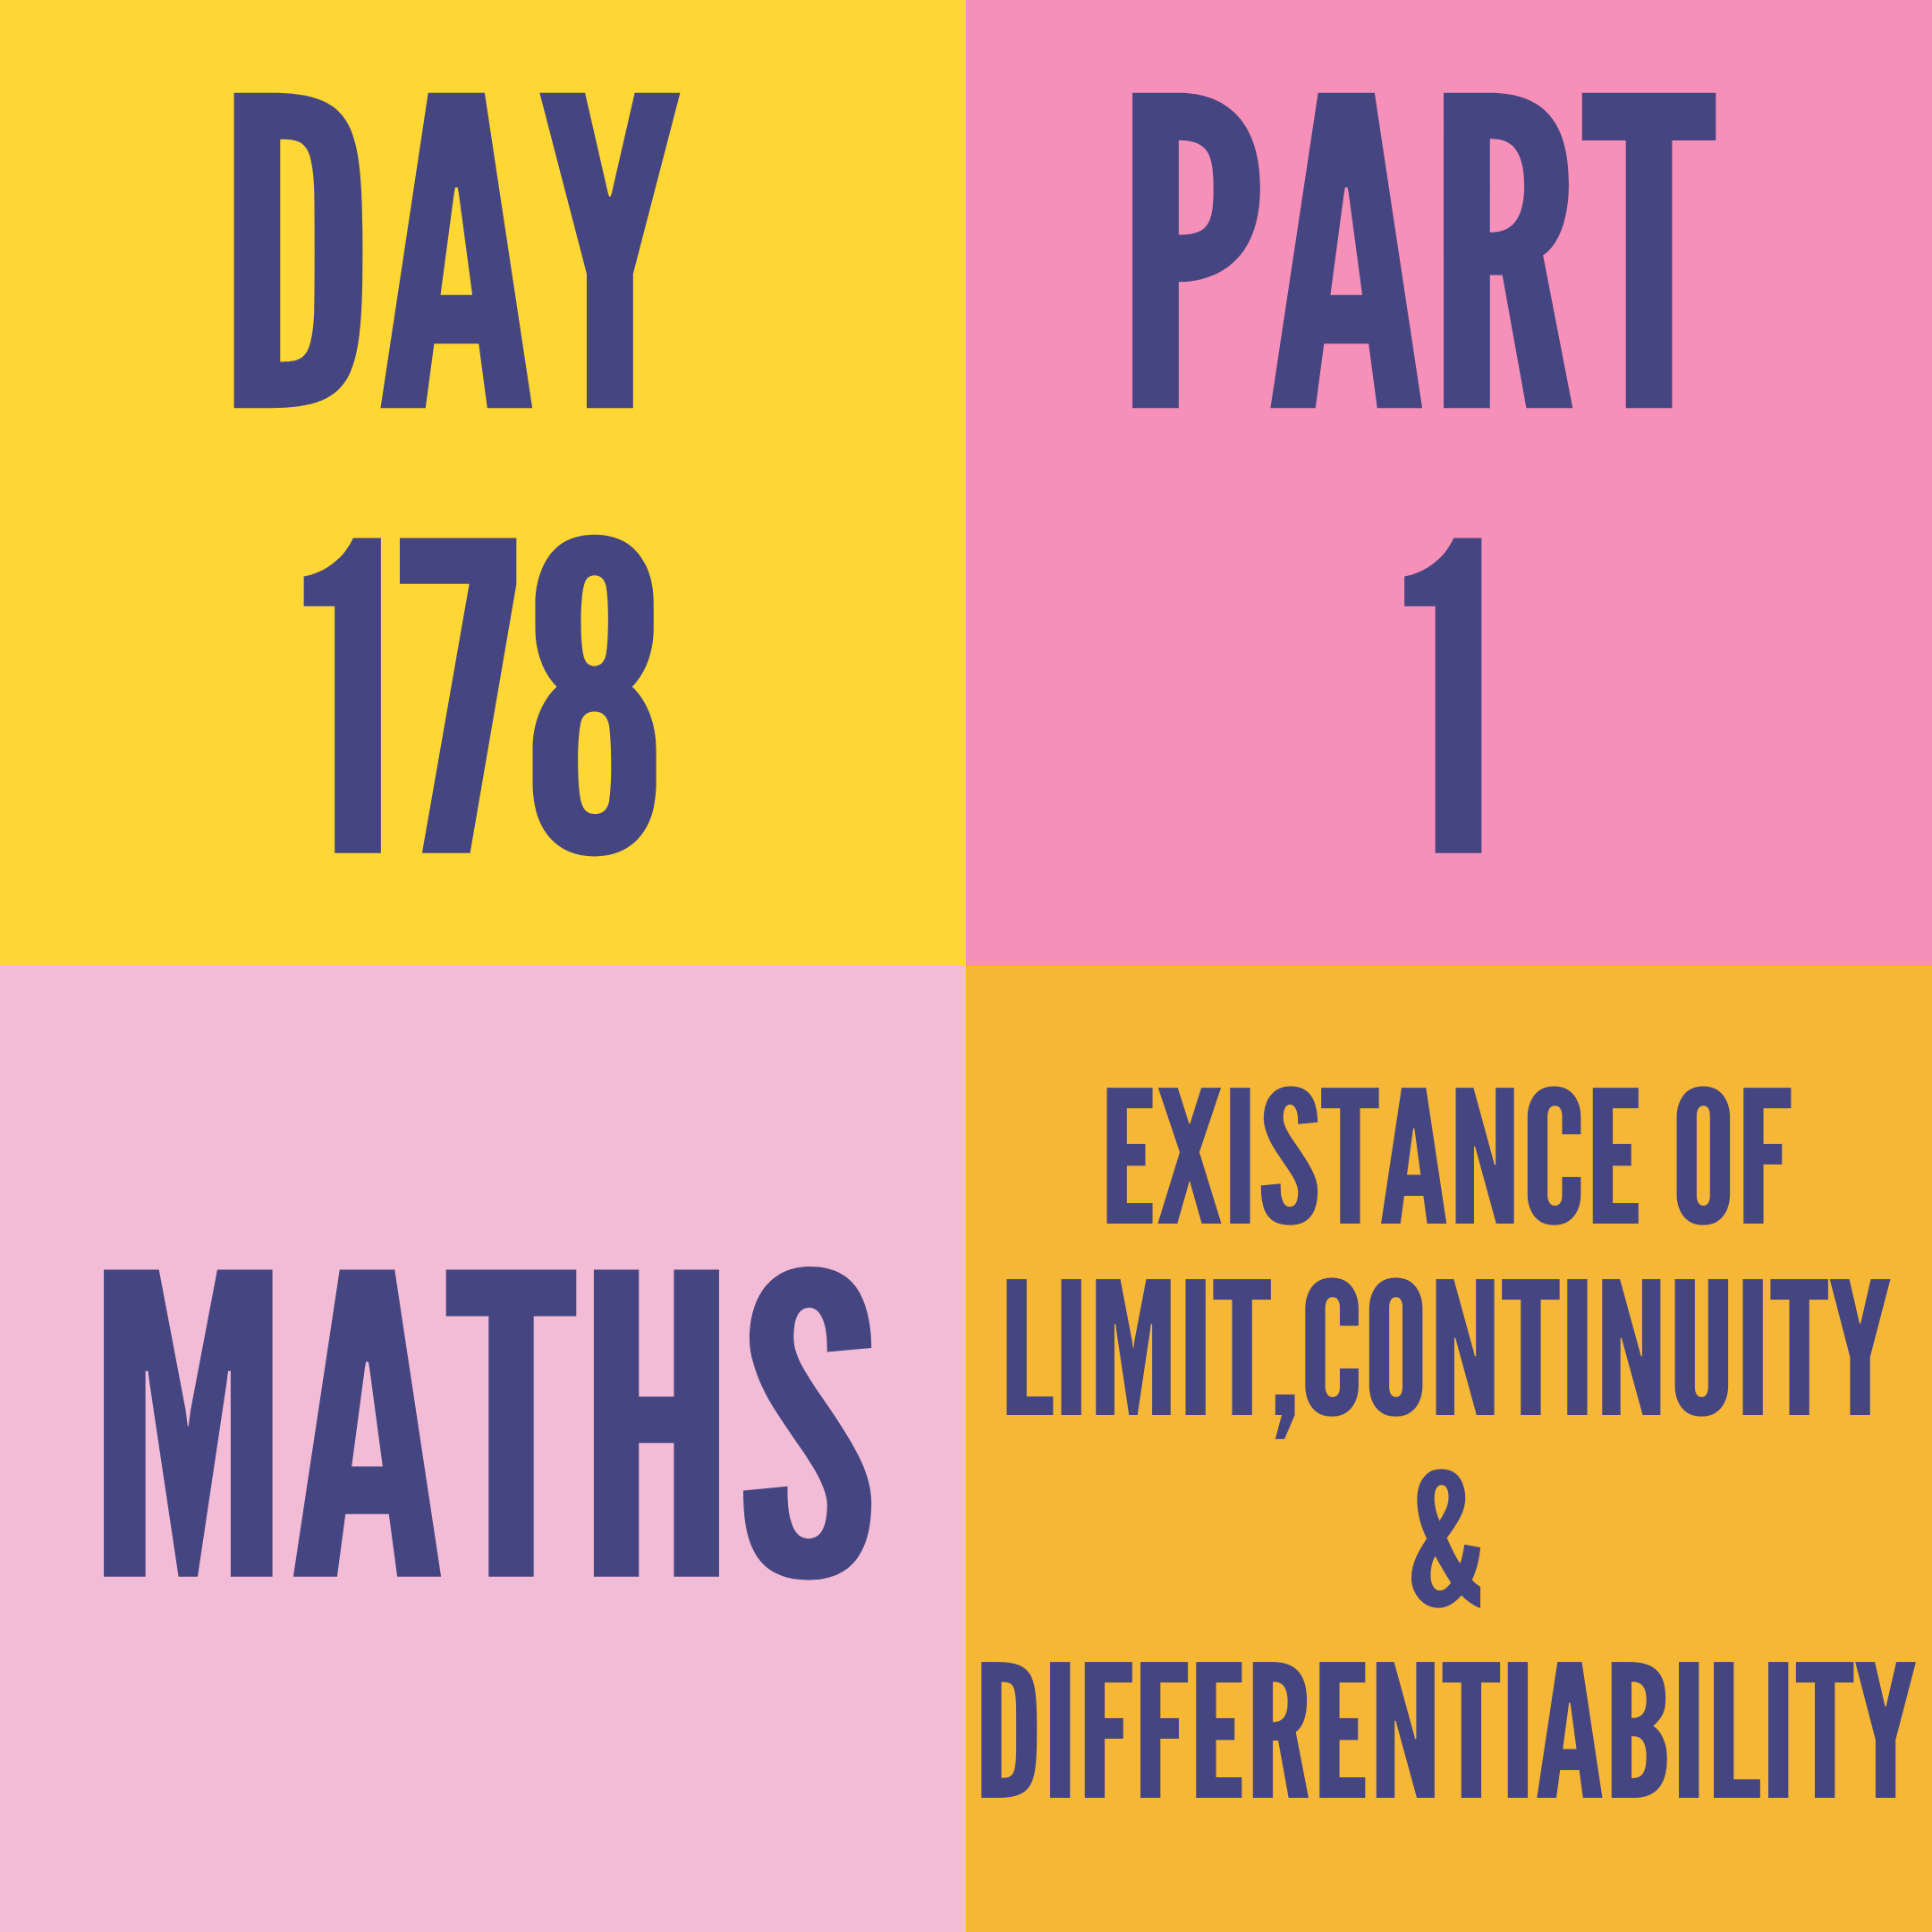 DAY-178 PART-1 EXISTENCE OF LIMIT CONTINUITY & DIFFERENTIABILITY